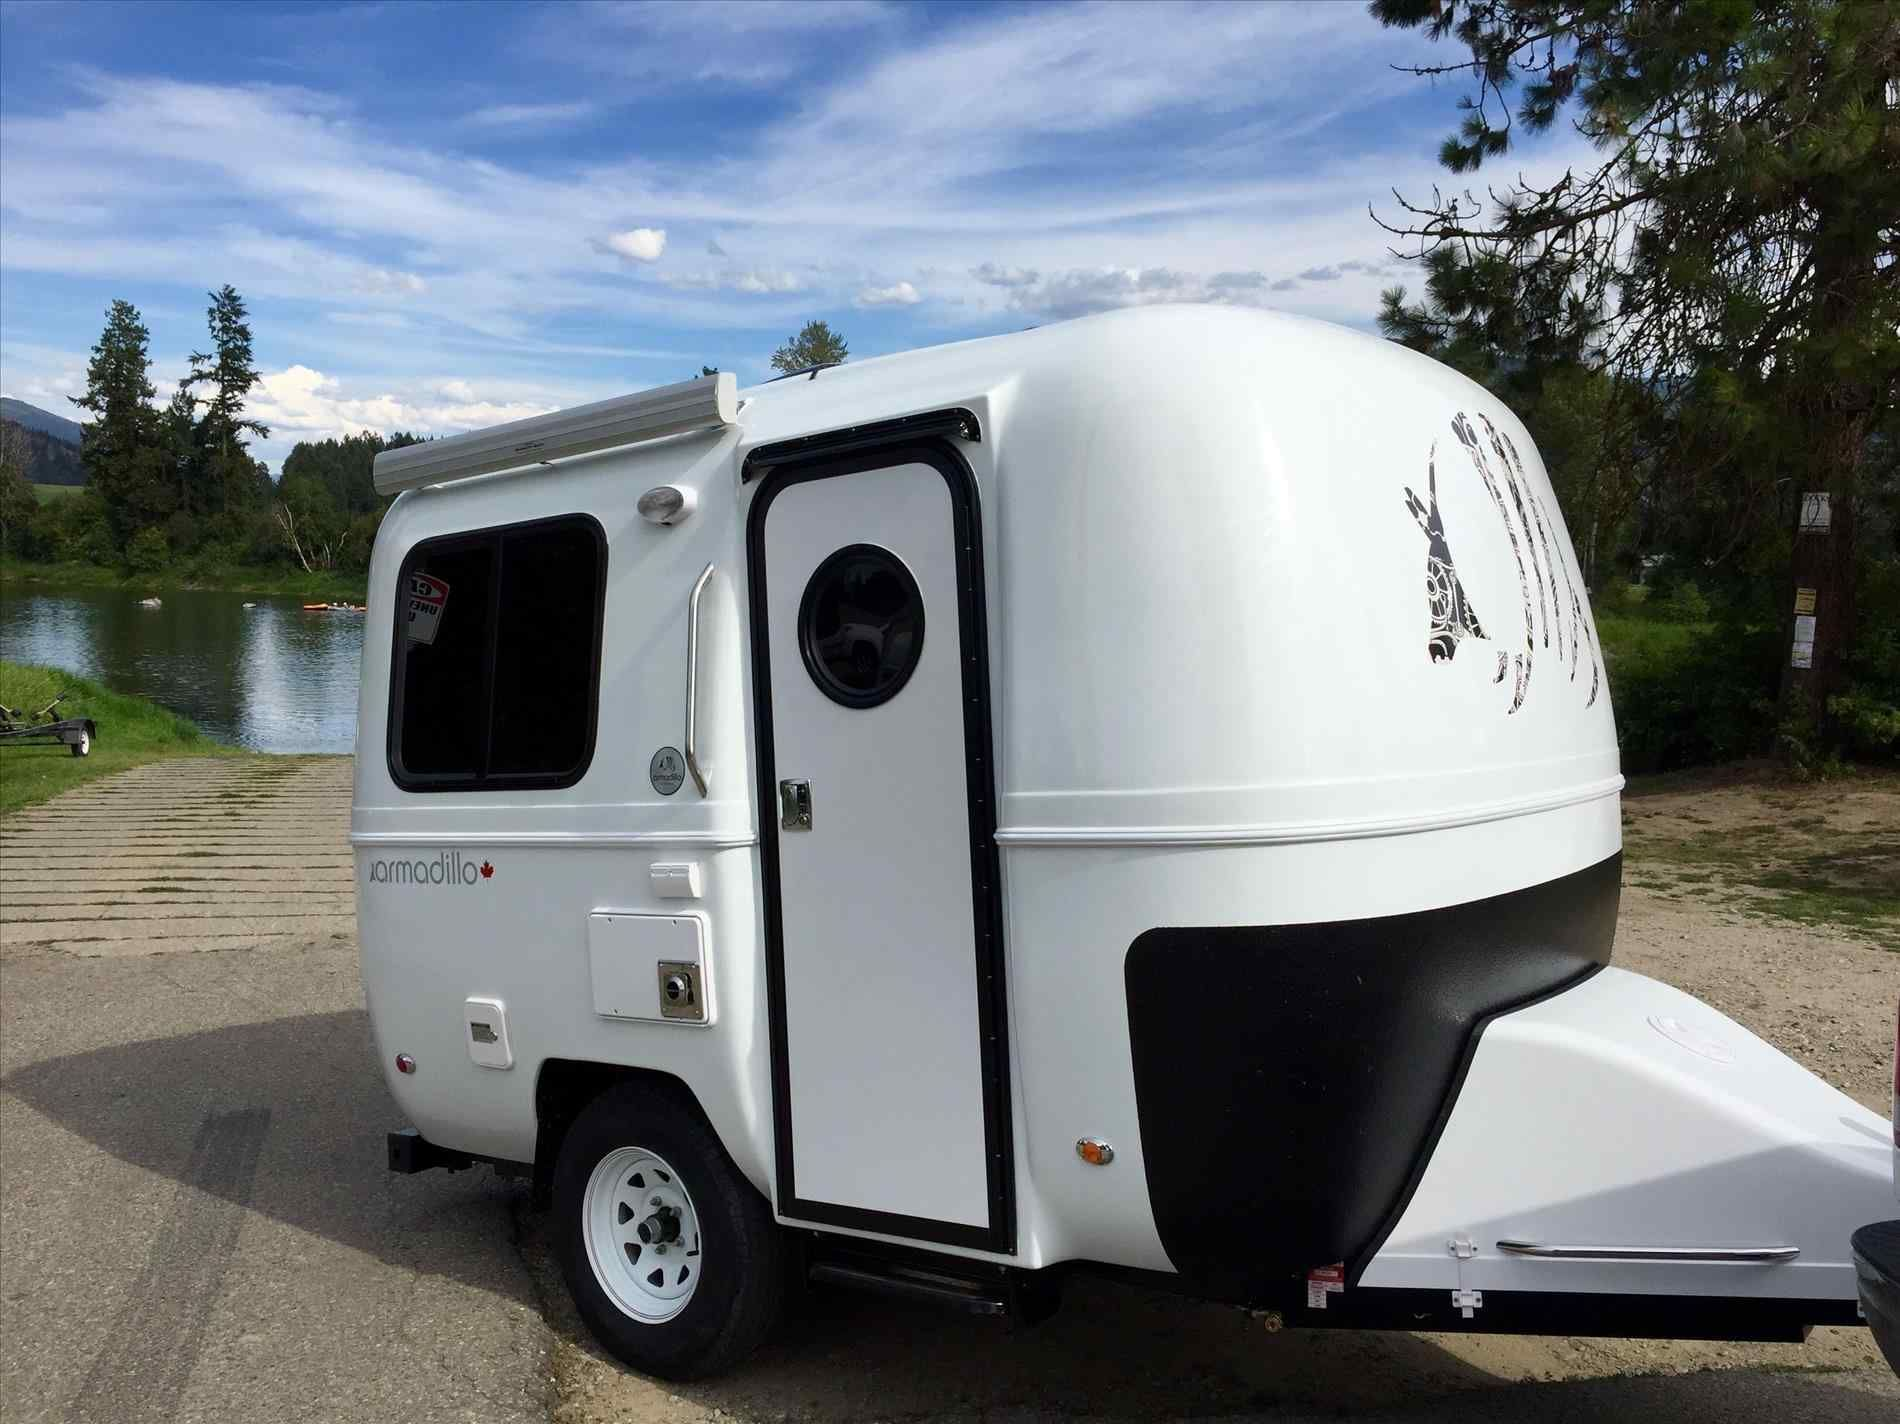 Best 11 Small Lightweight Travel Trailers For Simple And Cozy Camping Breakpr Lightweight Travel Trailers Small Lightweight Travel Trailers Tiny Trailers